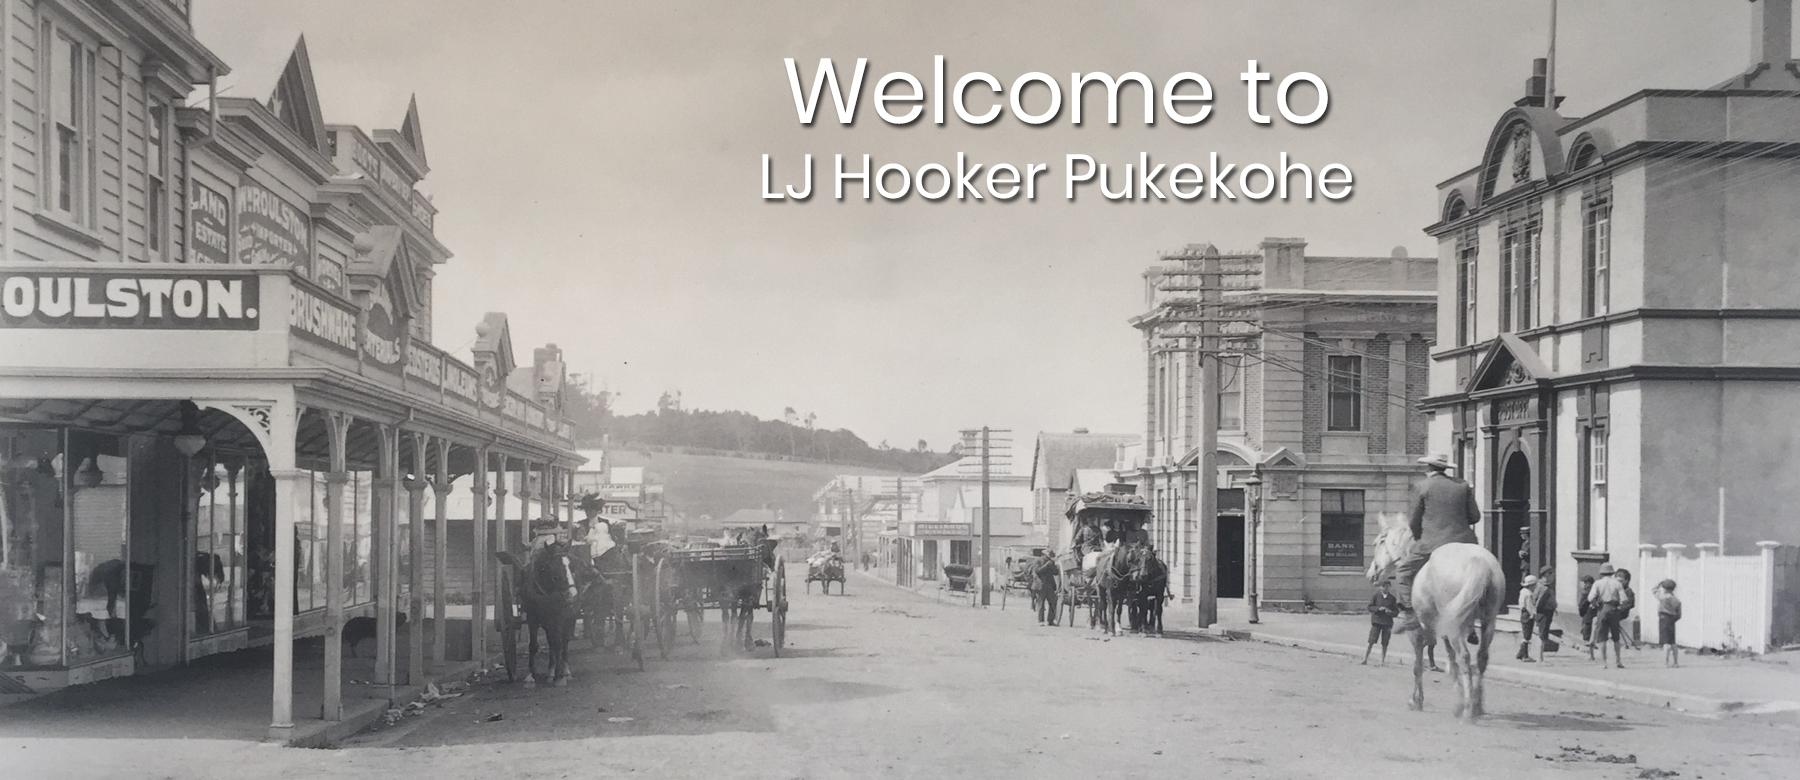 Welcome to LJ Hooker Pukekohe